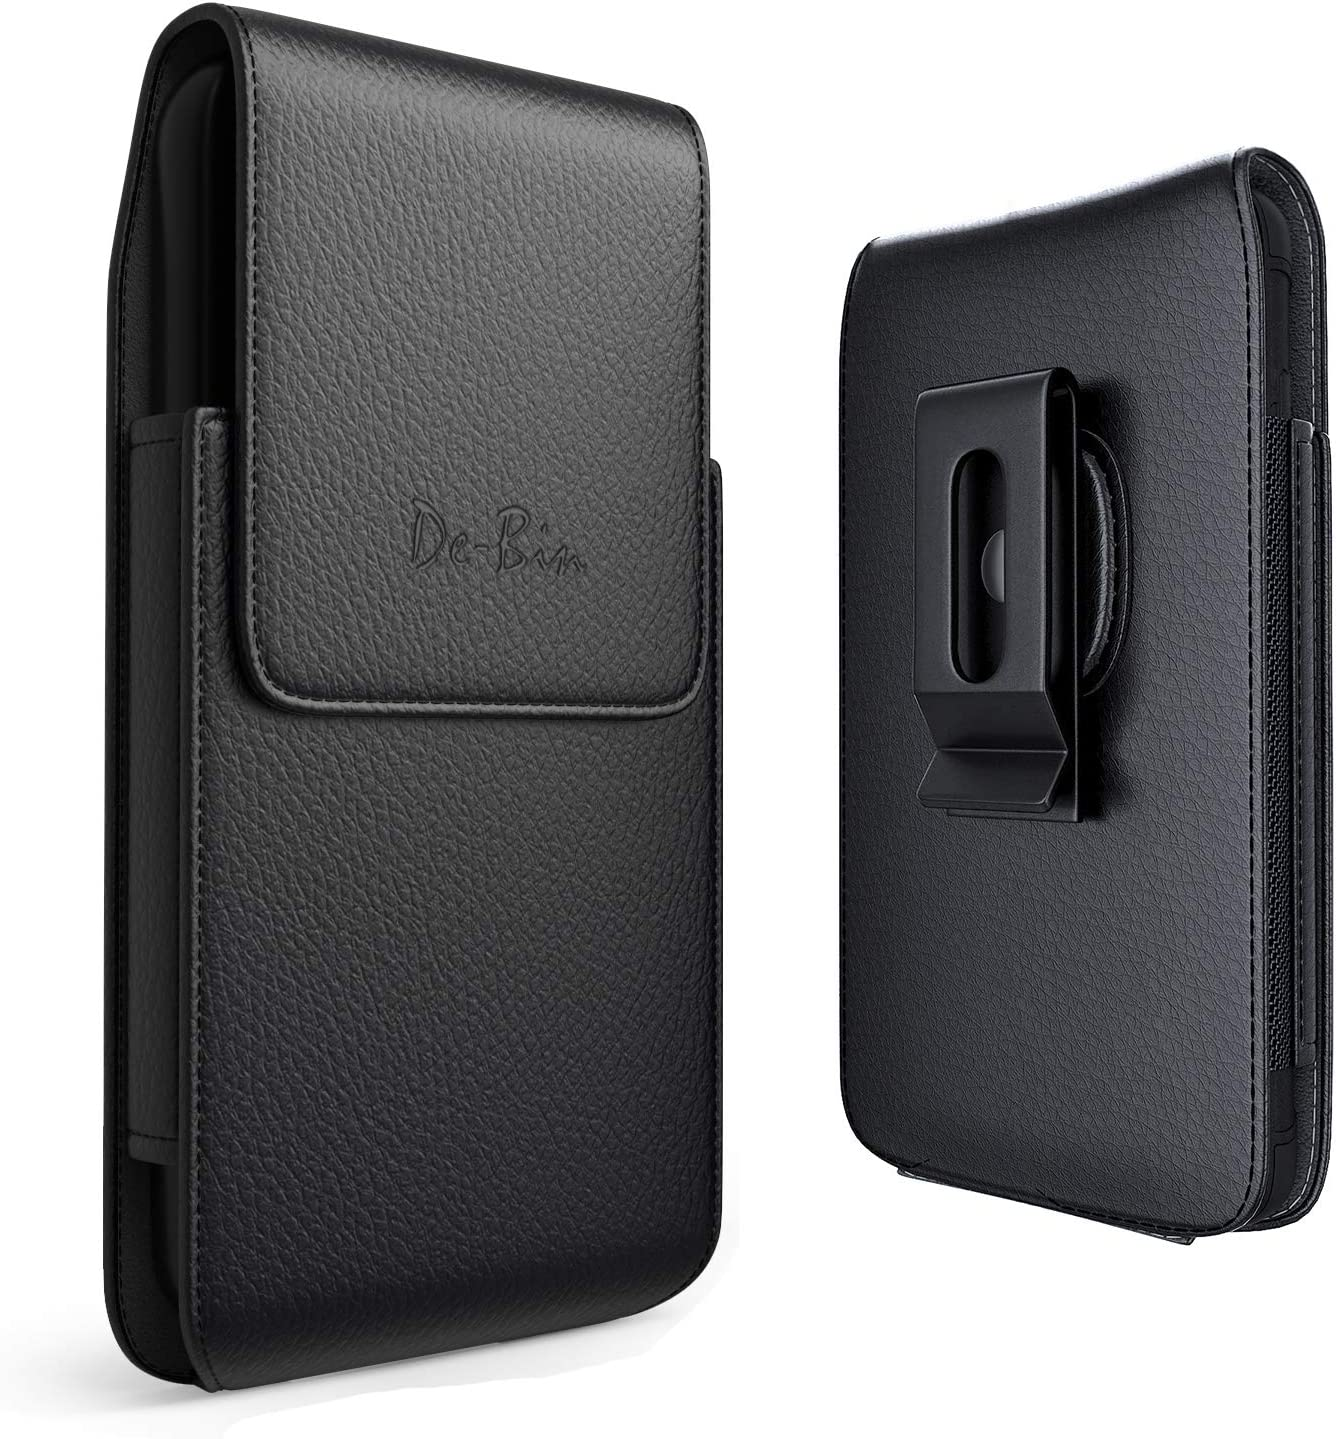 De-Bin Cell Phone Holster Designed for Samsung Galaxy S6 S7 Vertical Belt Case with Belt Clip Loops Phone Pouch Belt Holder Cover Fits Galaxy S6/ S6 Edge/ S7/ S10e with Slim to Medium Case on - Black